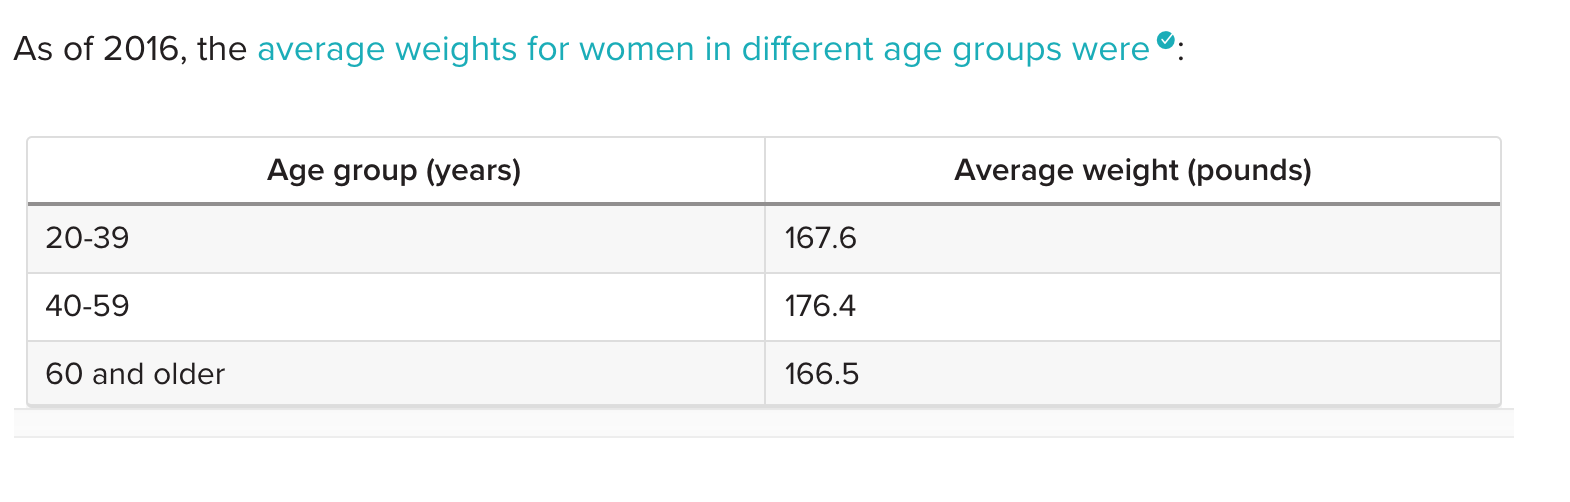 table showing average body weight (in pounds) increasing for women as they age.